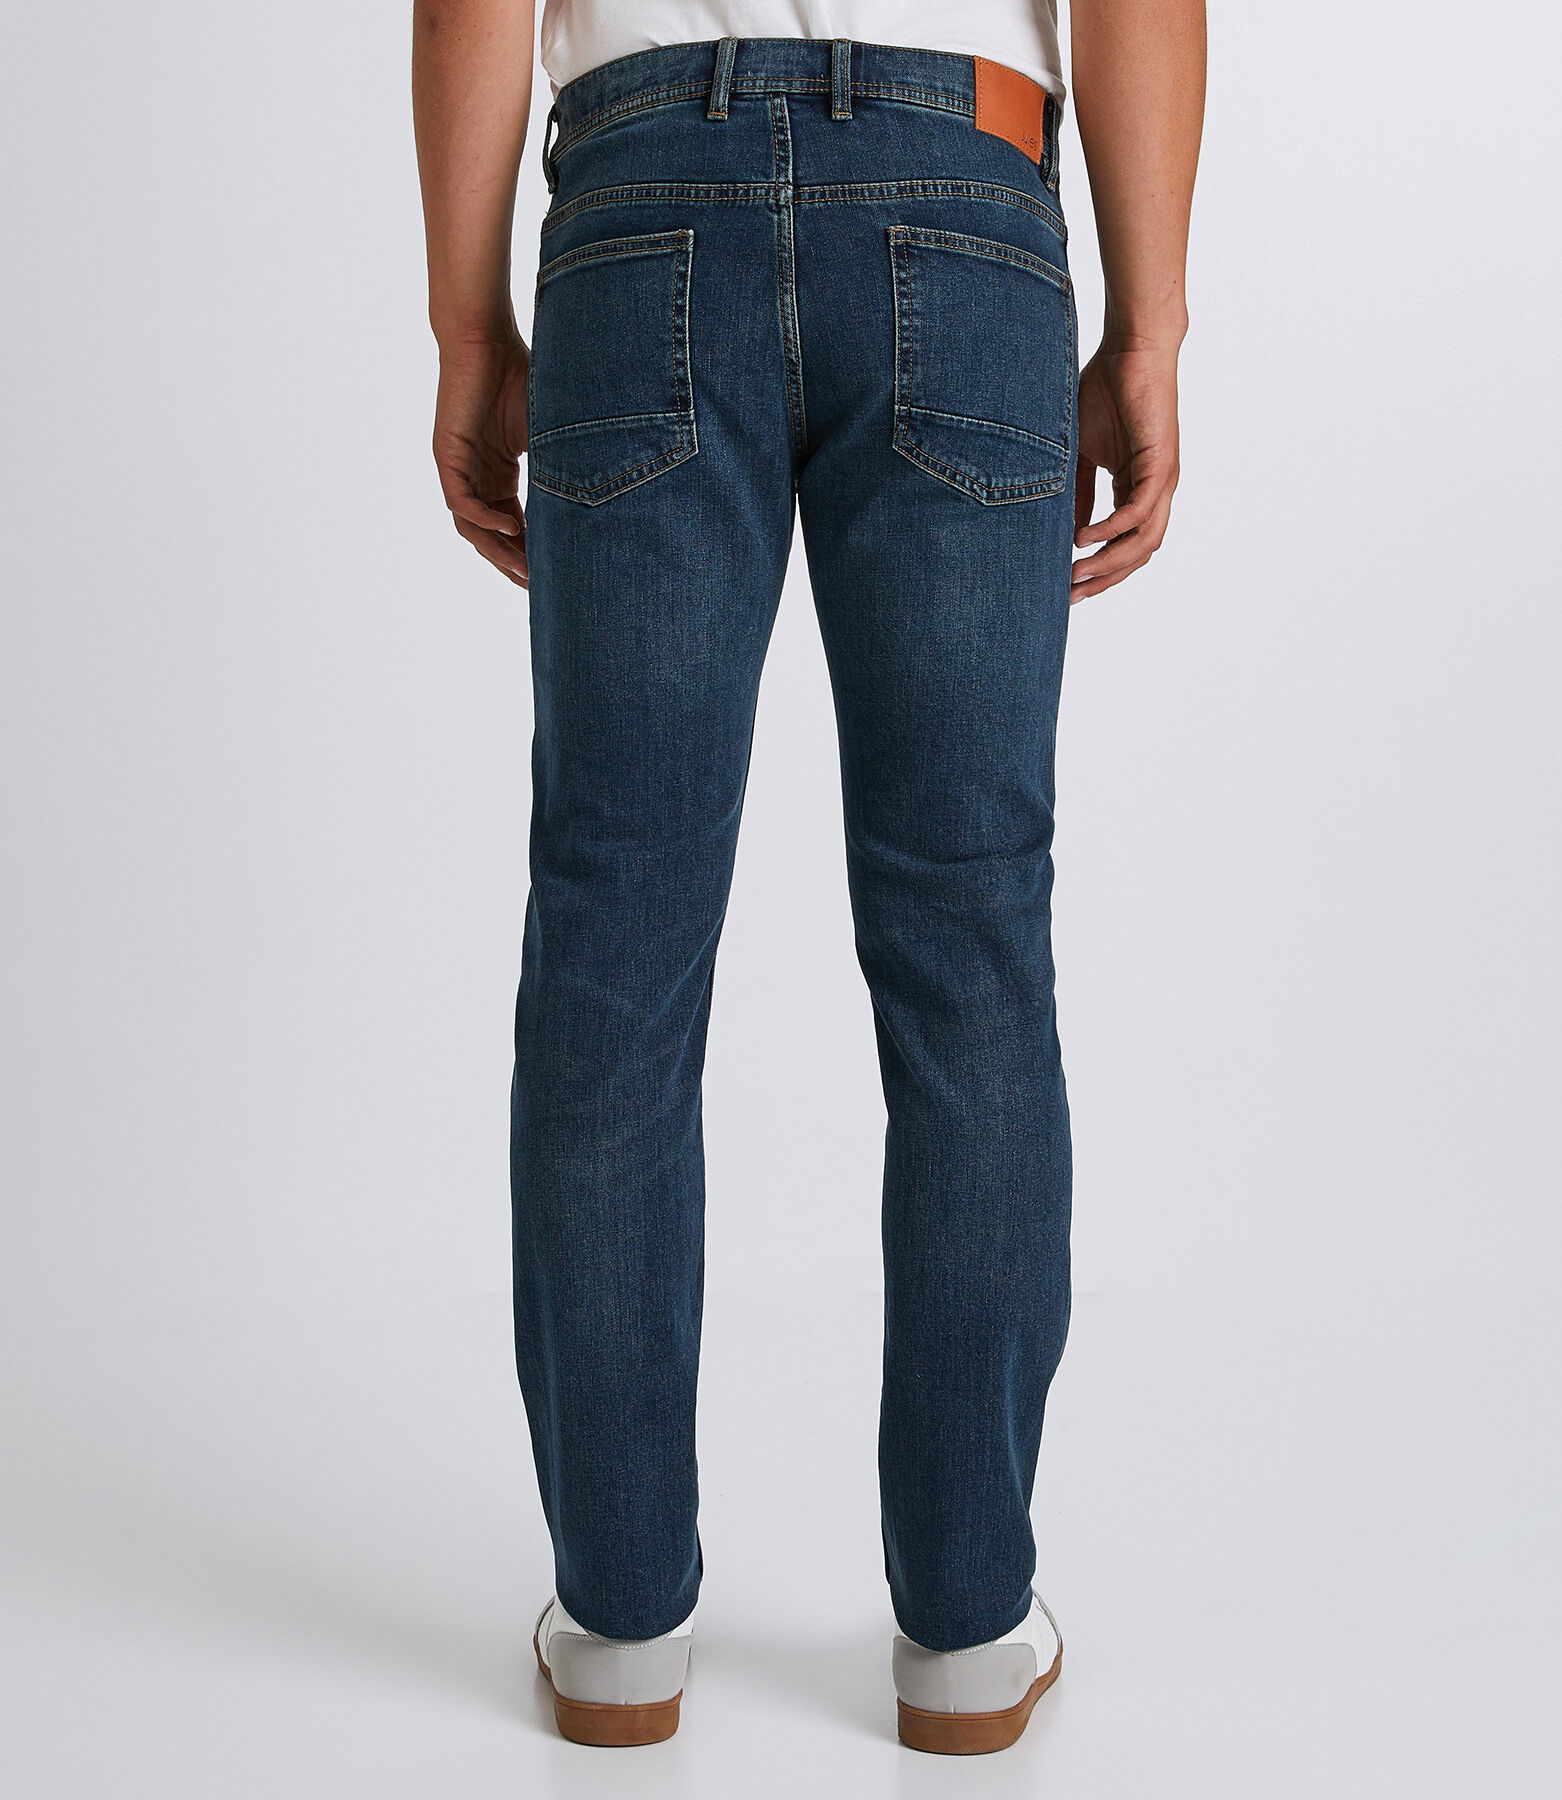 Straight jeans 4L, dirty blauw